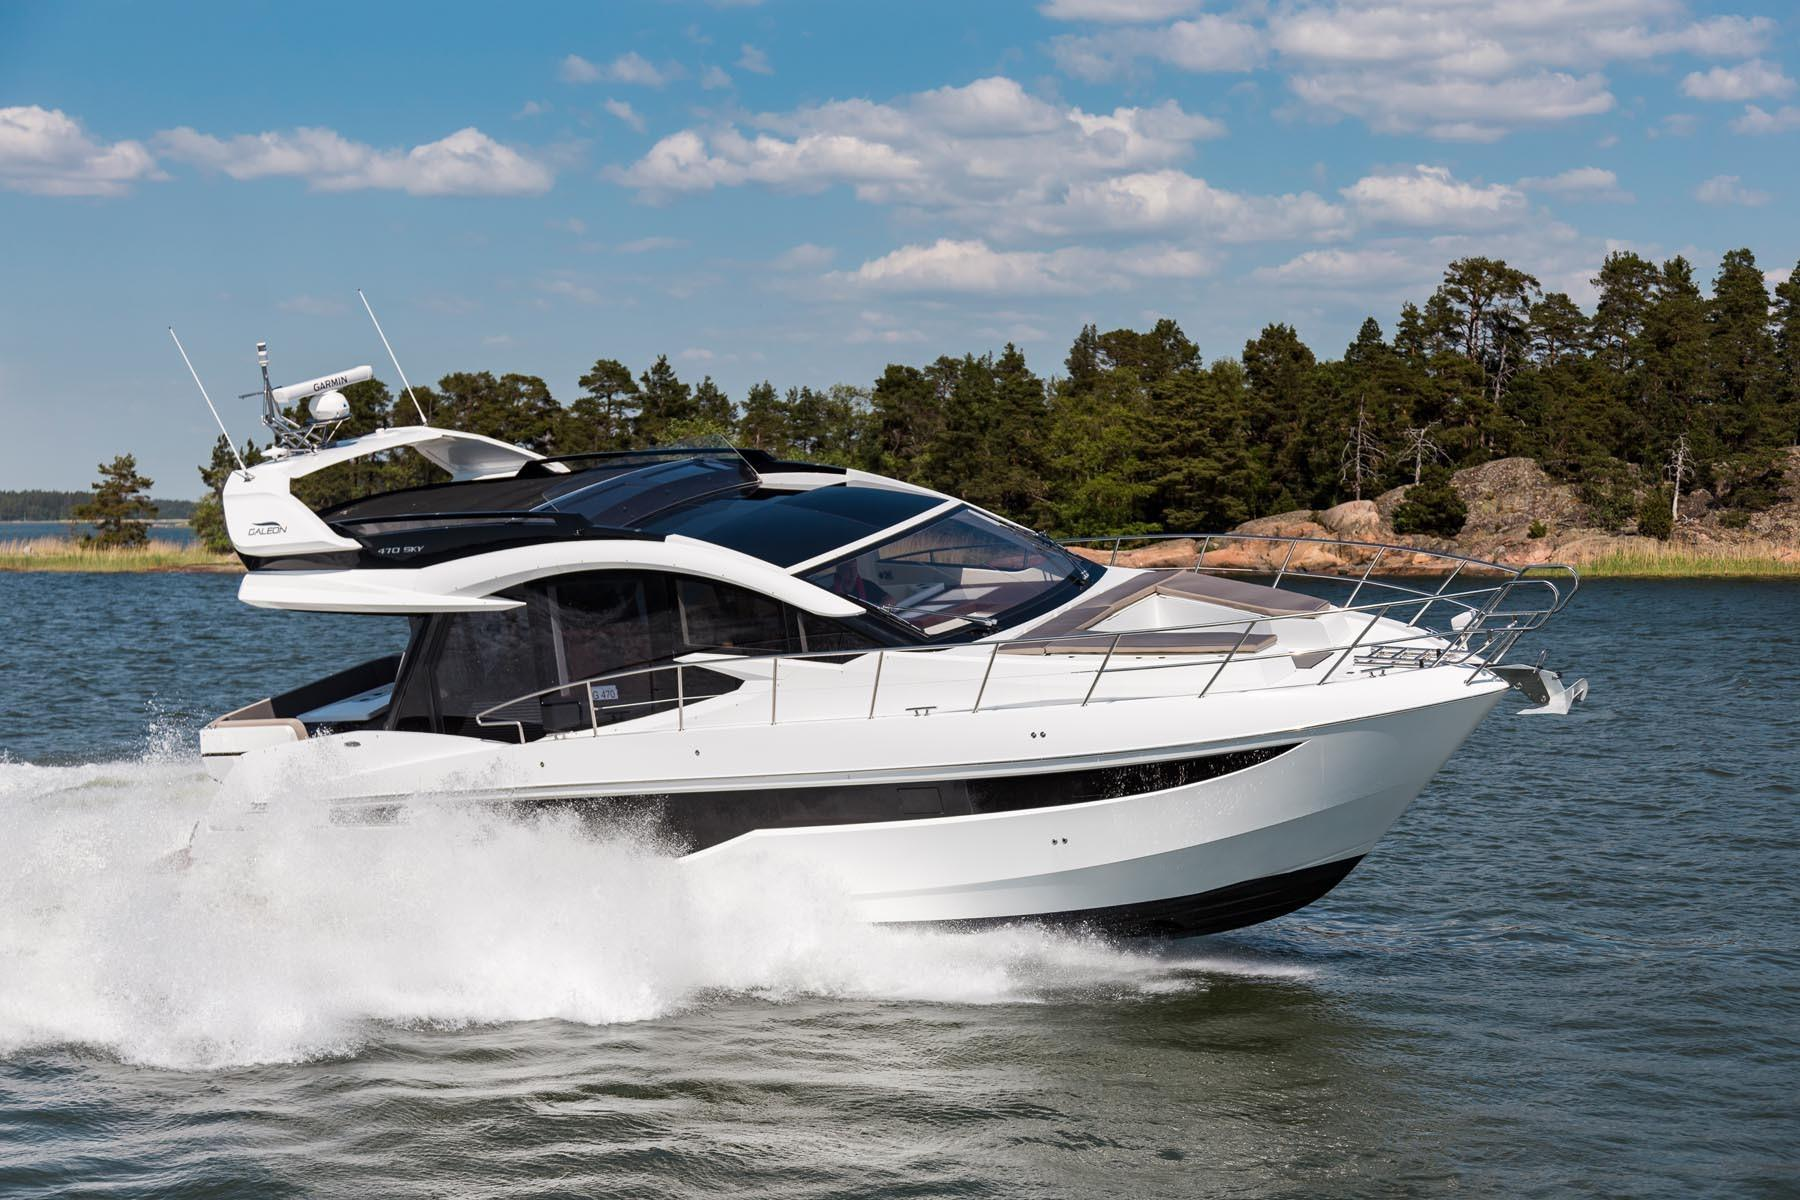 Thumbnail 4 for 2021 Galeon 470 SKY